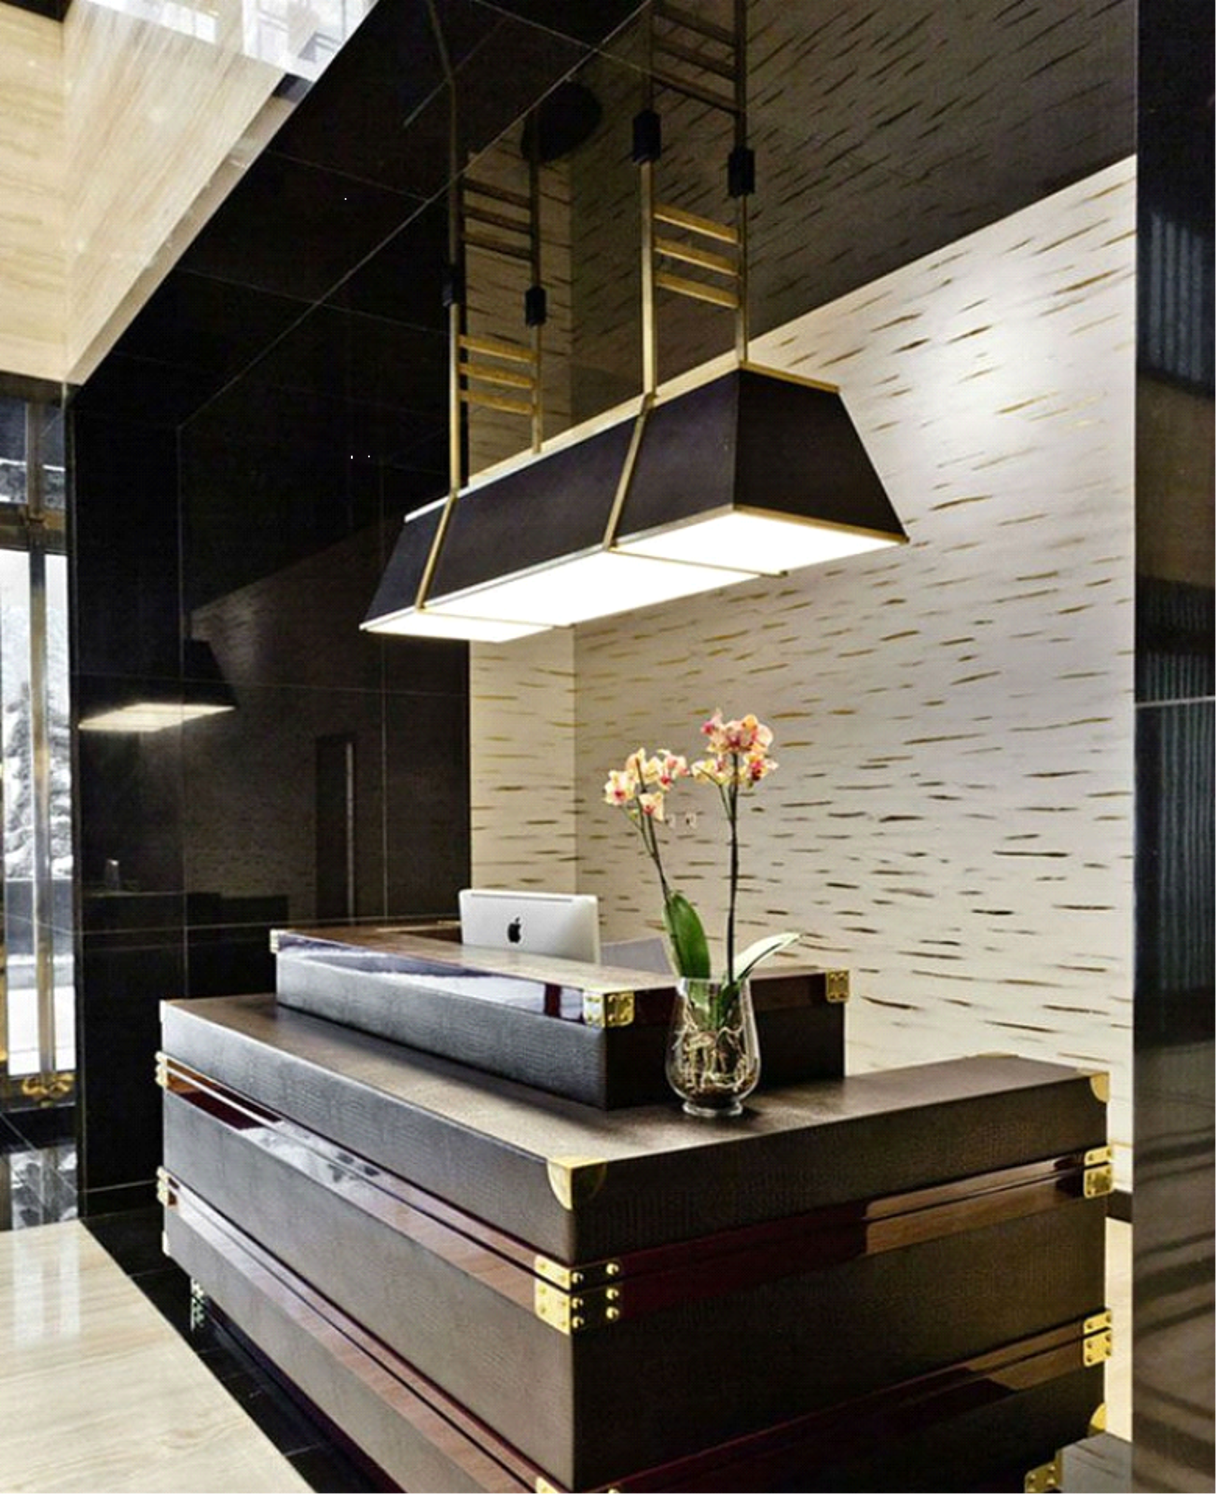 Design Inspiration for Your Modern Office Reception Space